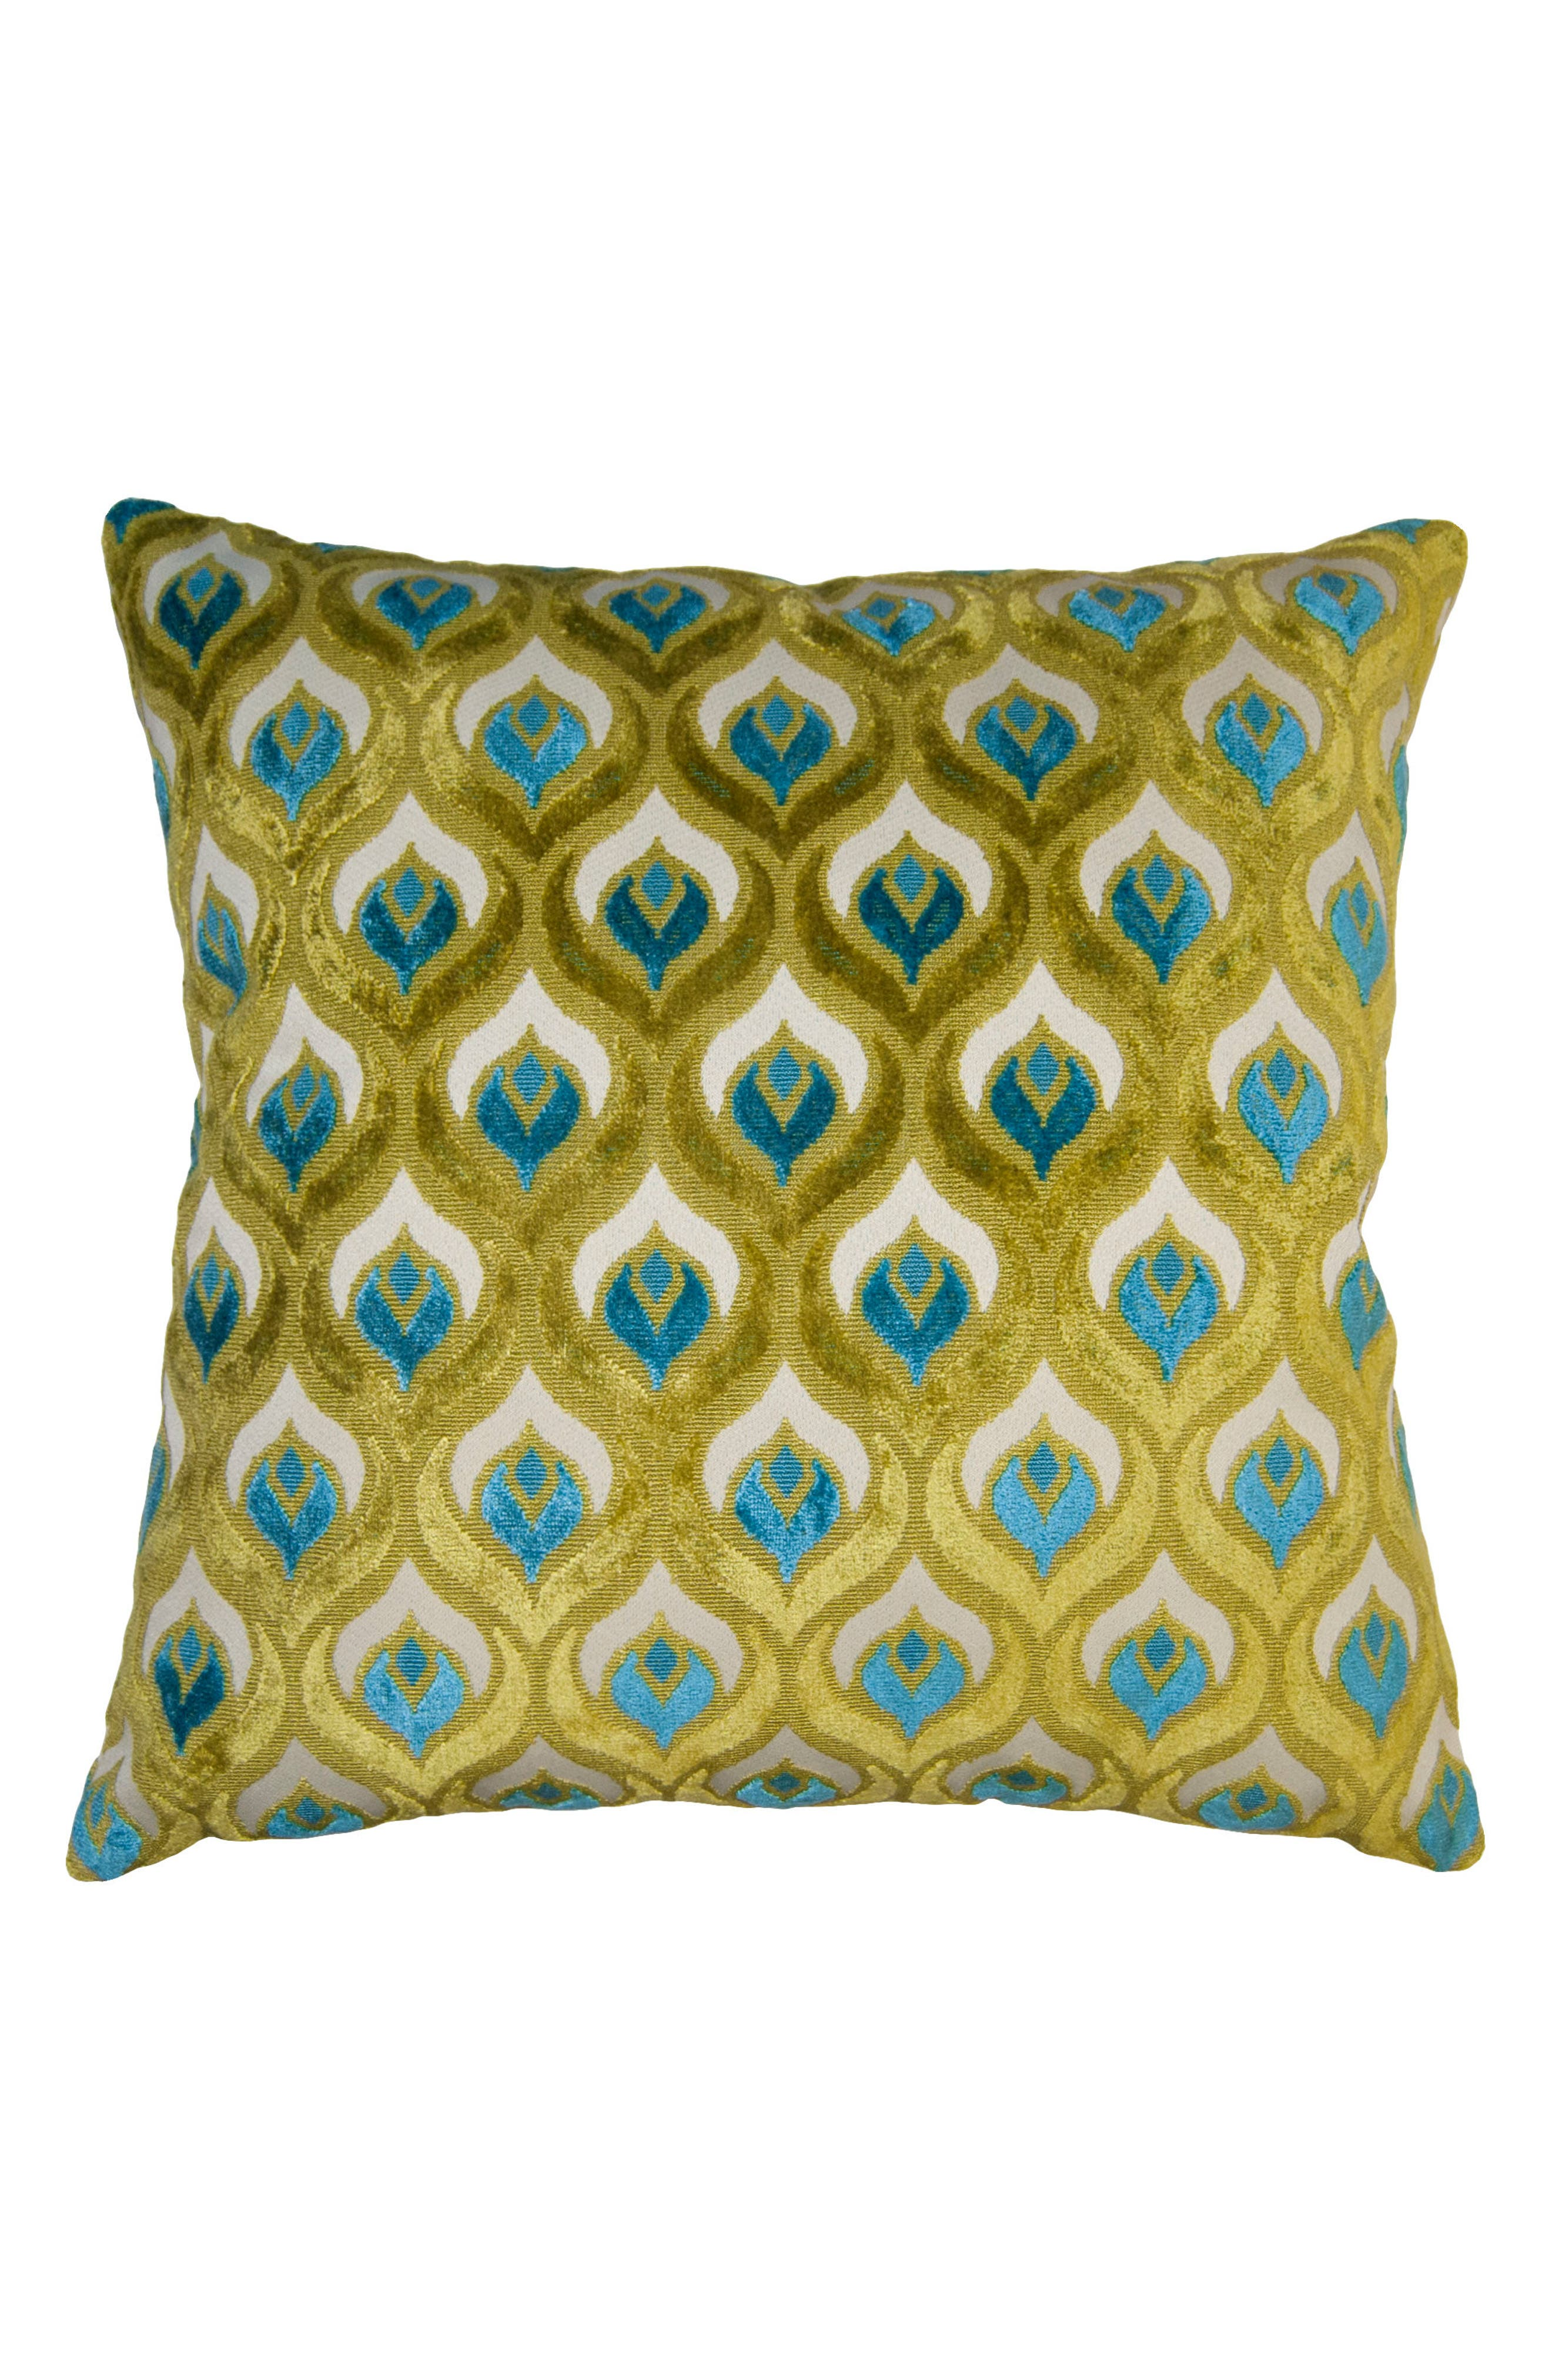 Riviera Ornate Accent Pillow,                         Main,                         color, Green